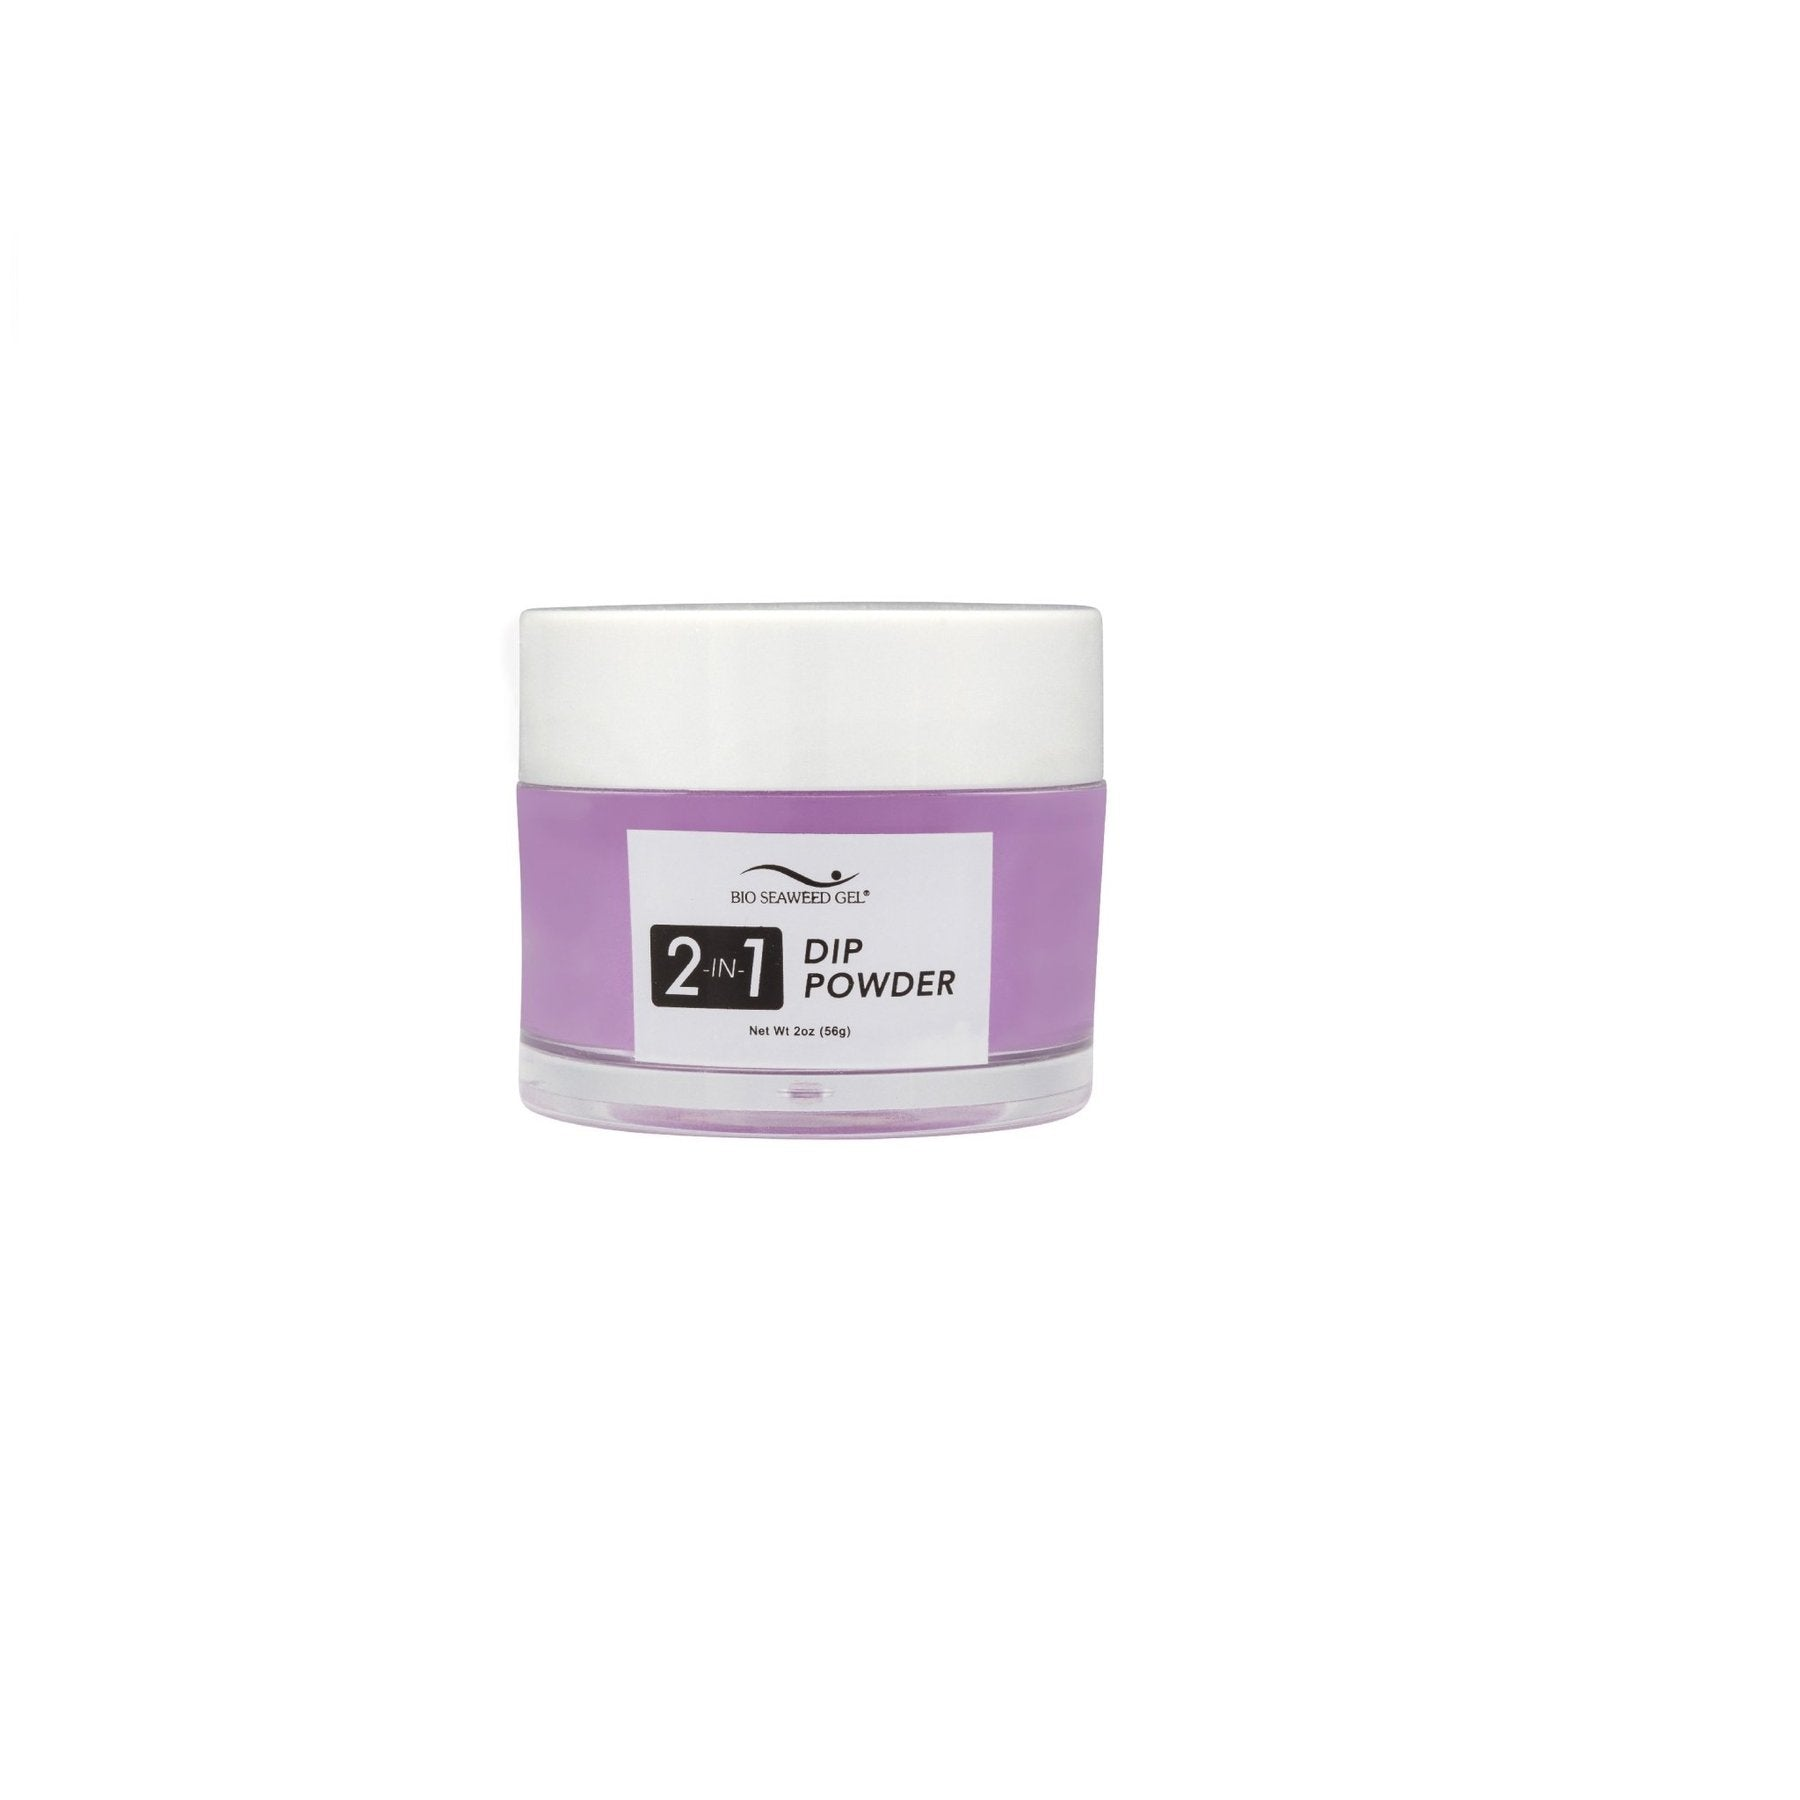 37 BERRY SWEET | Bio Seaweed Gel® Dip Powder System - CM Nails & Beauty Supply